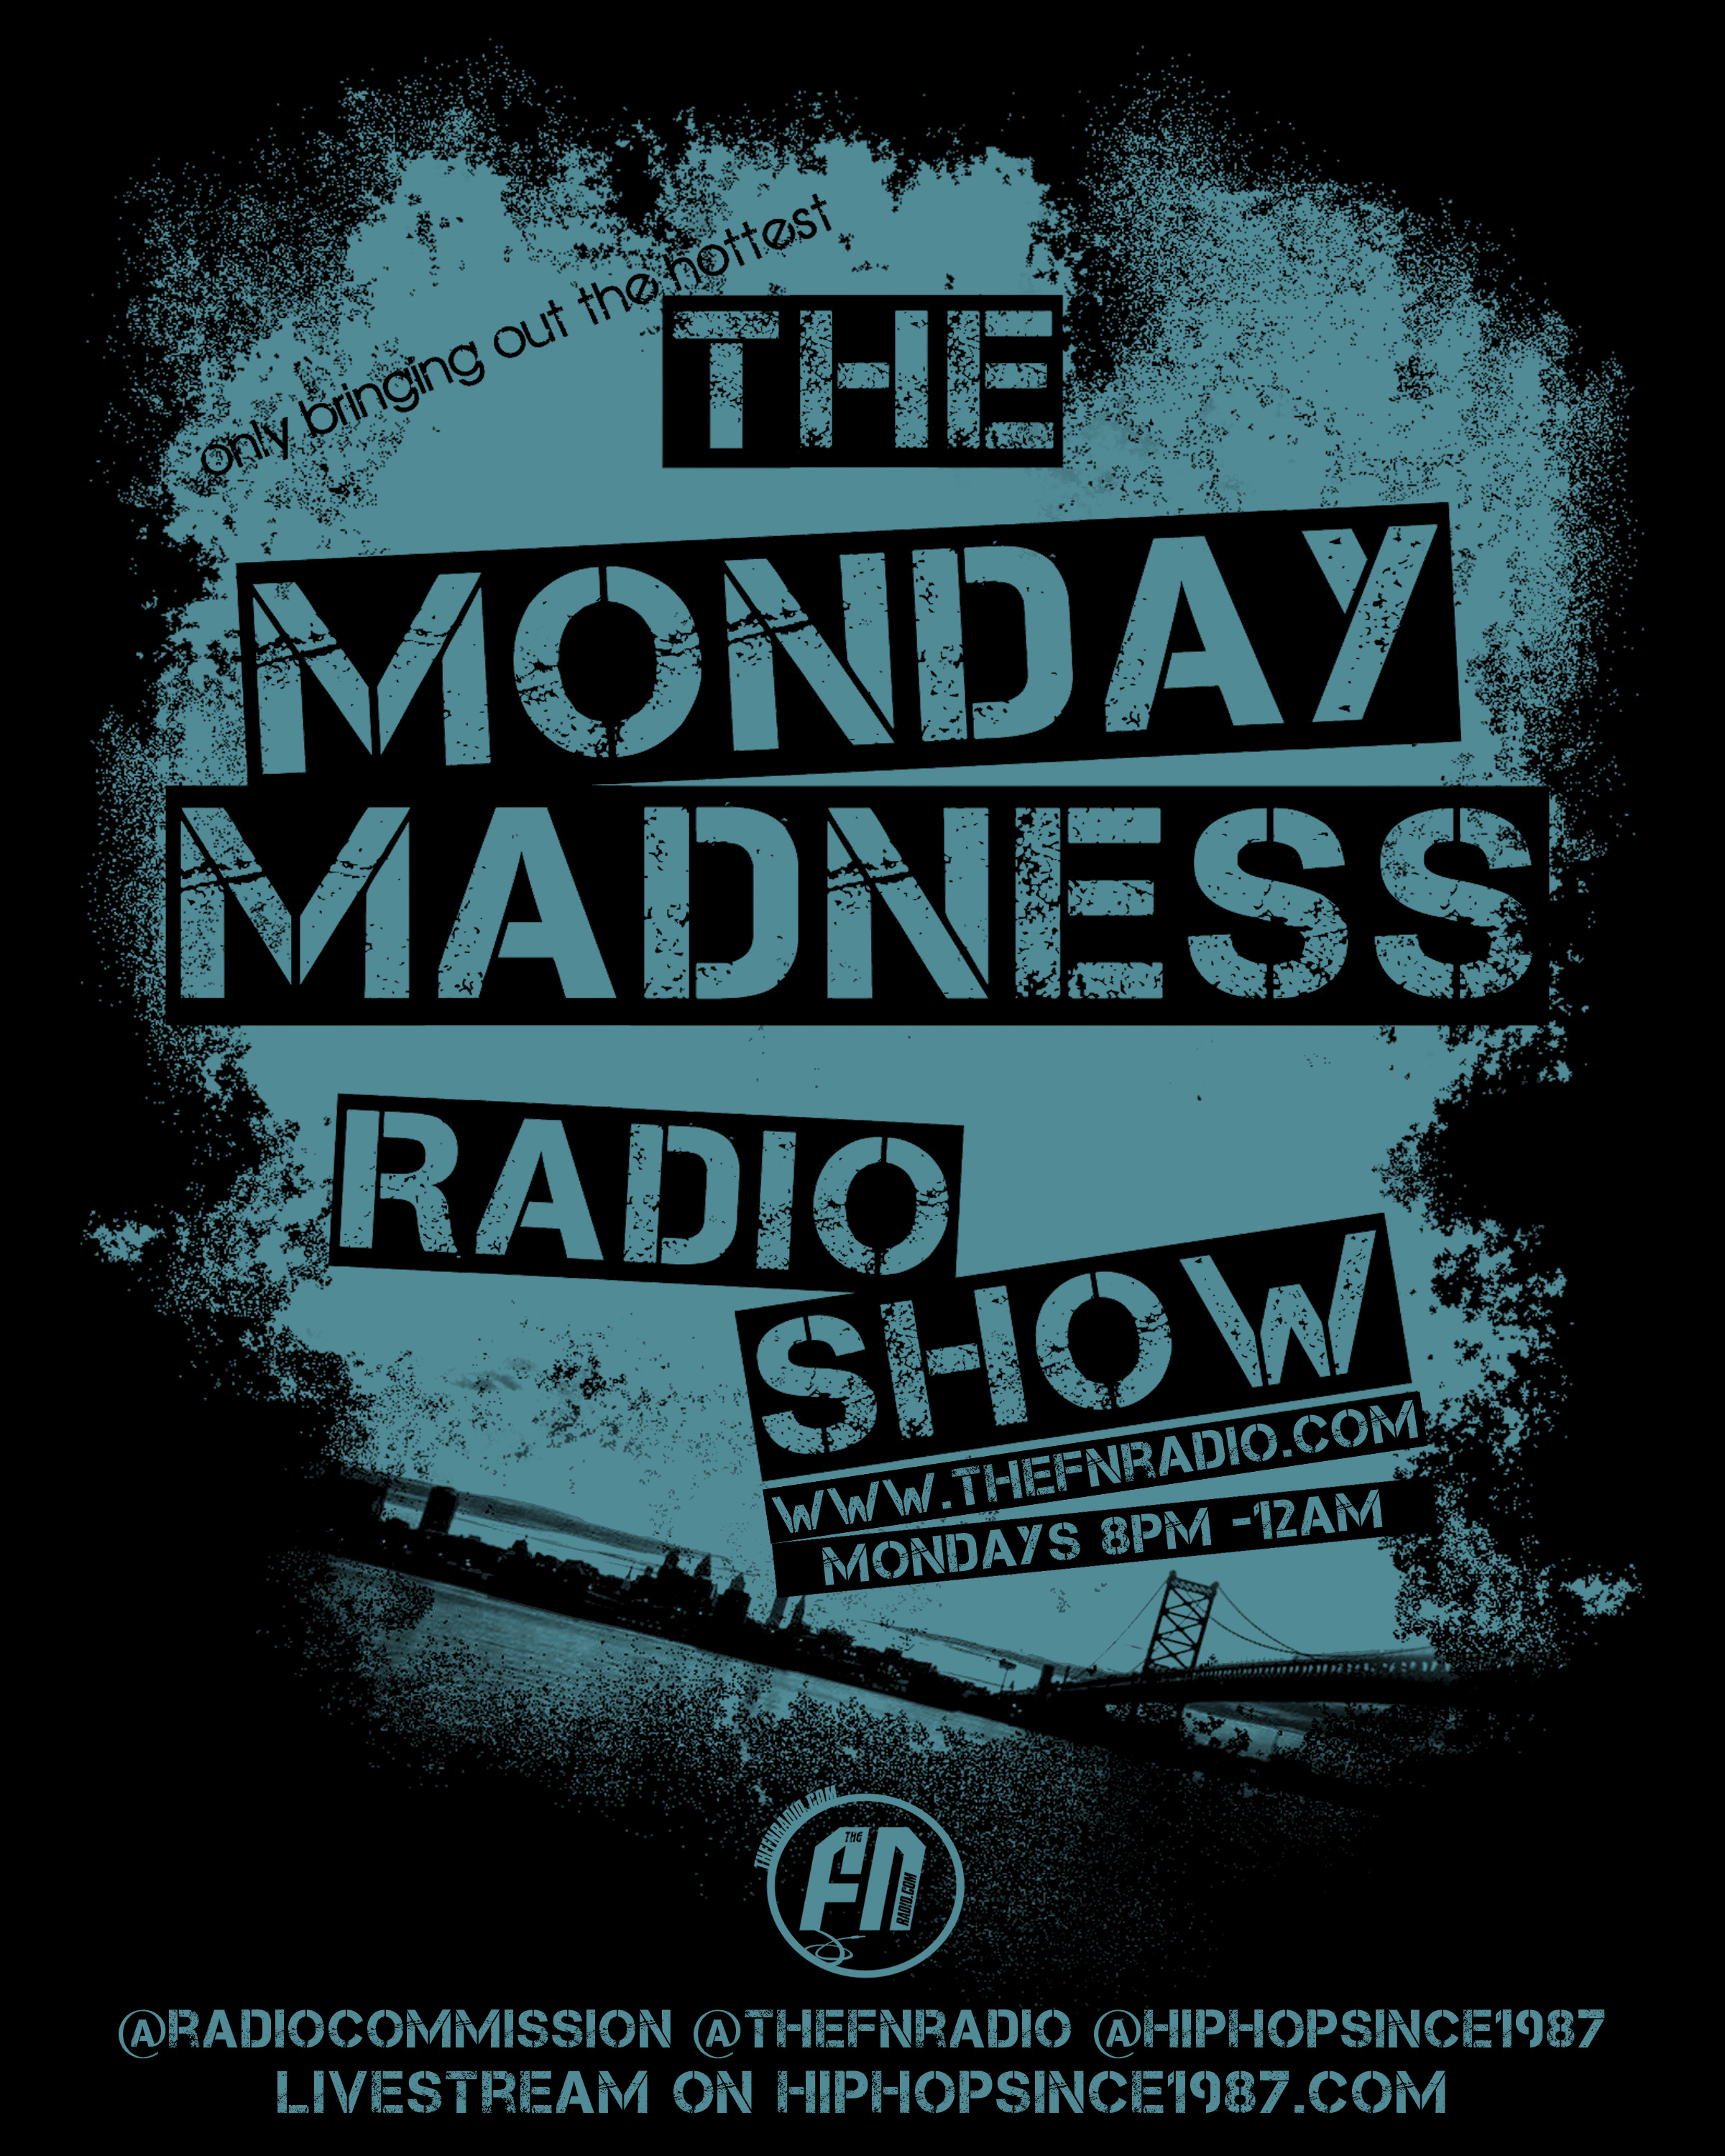 MondayMadnessk2 Tonight The Monday Madness Show (@Monmadnessradio) Ft @Imjuskp & @Ryanstar #PERSONALS 8pm Livestream on Hiphopsince1987.Com